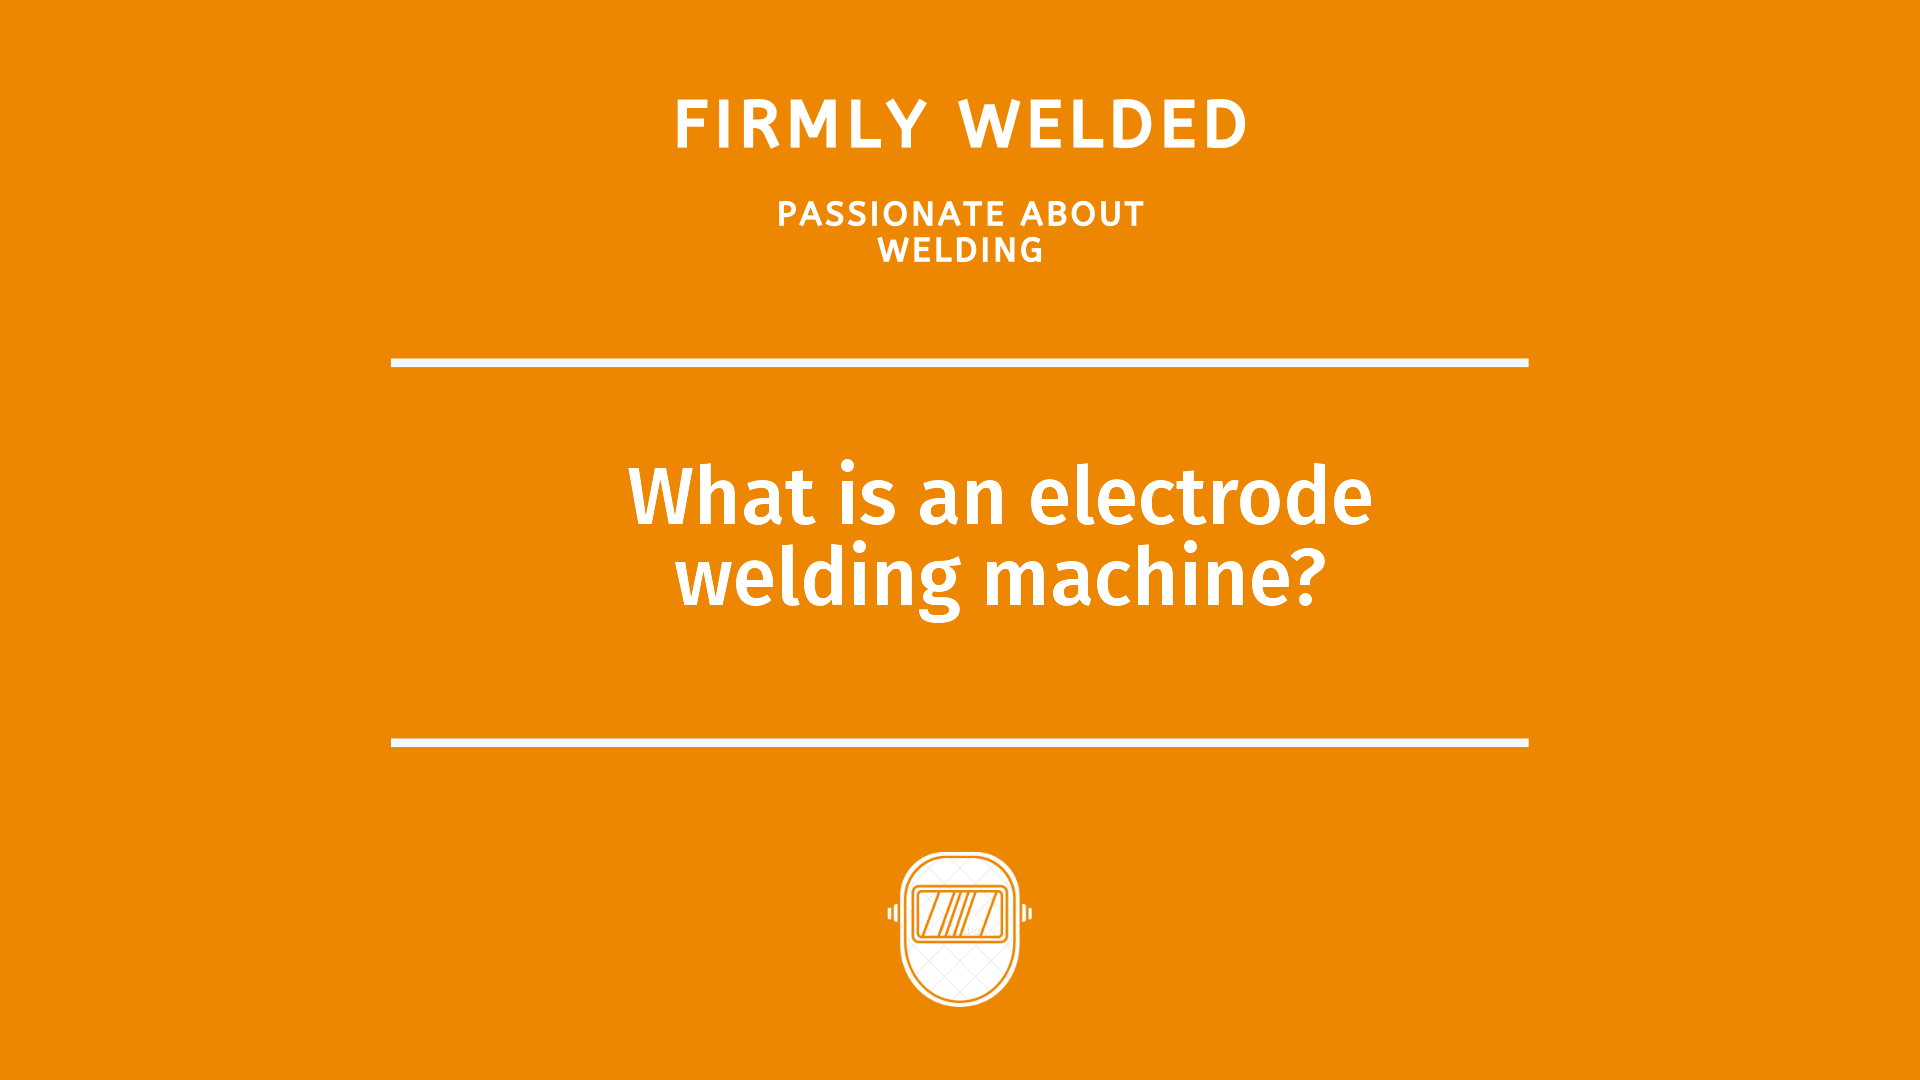 What is an electrode welding machine?